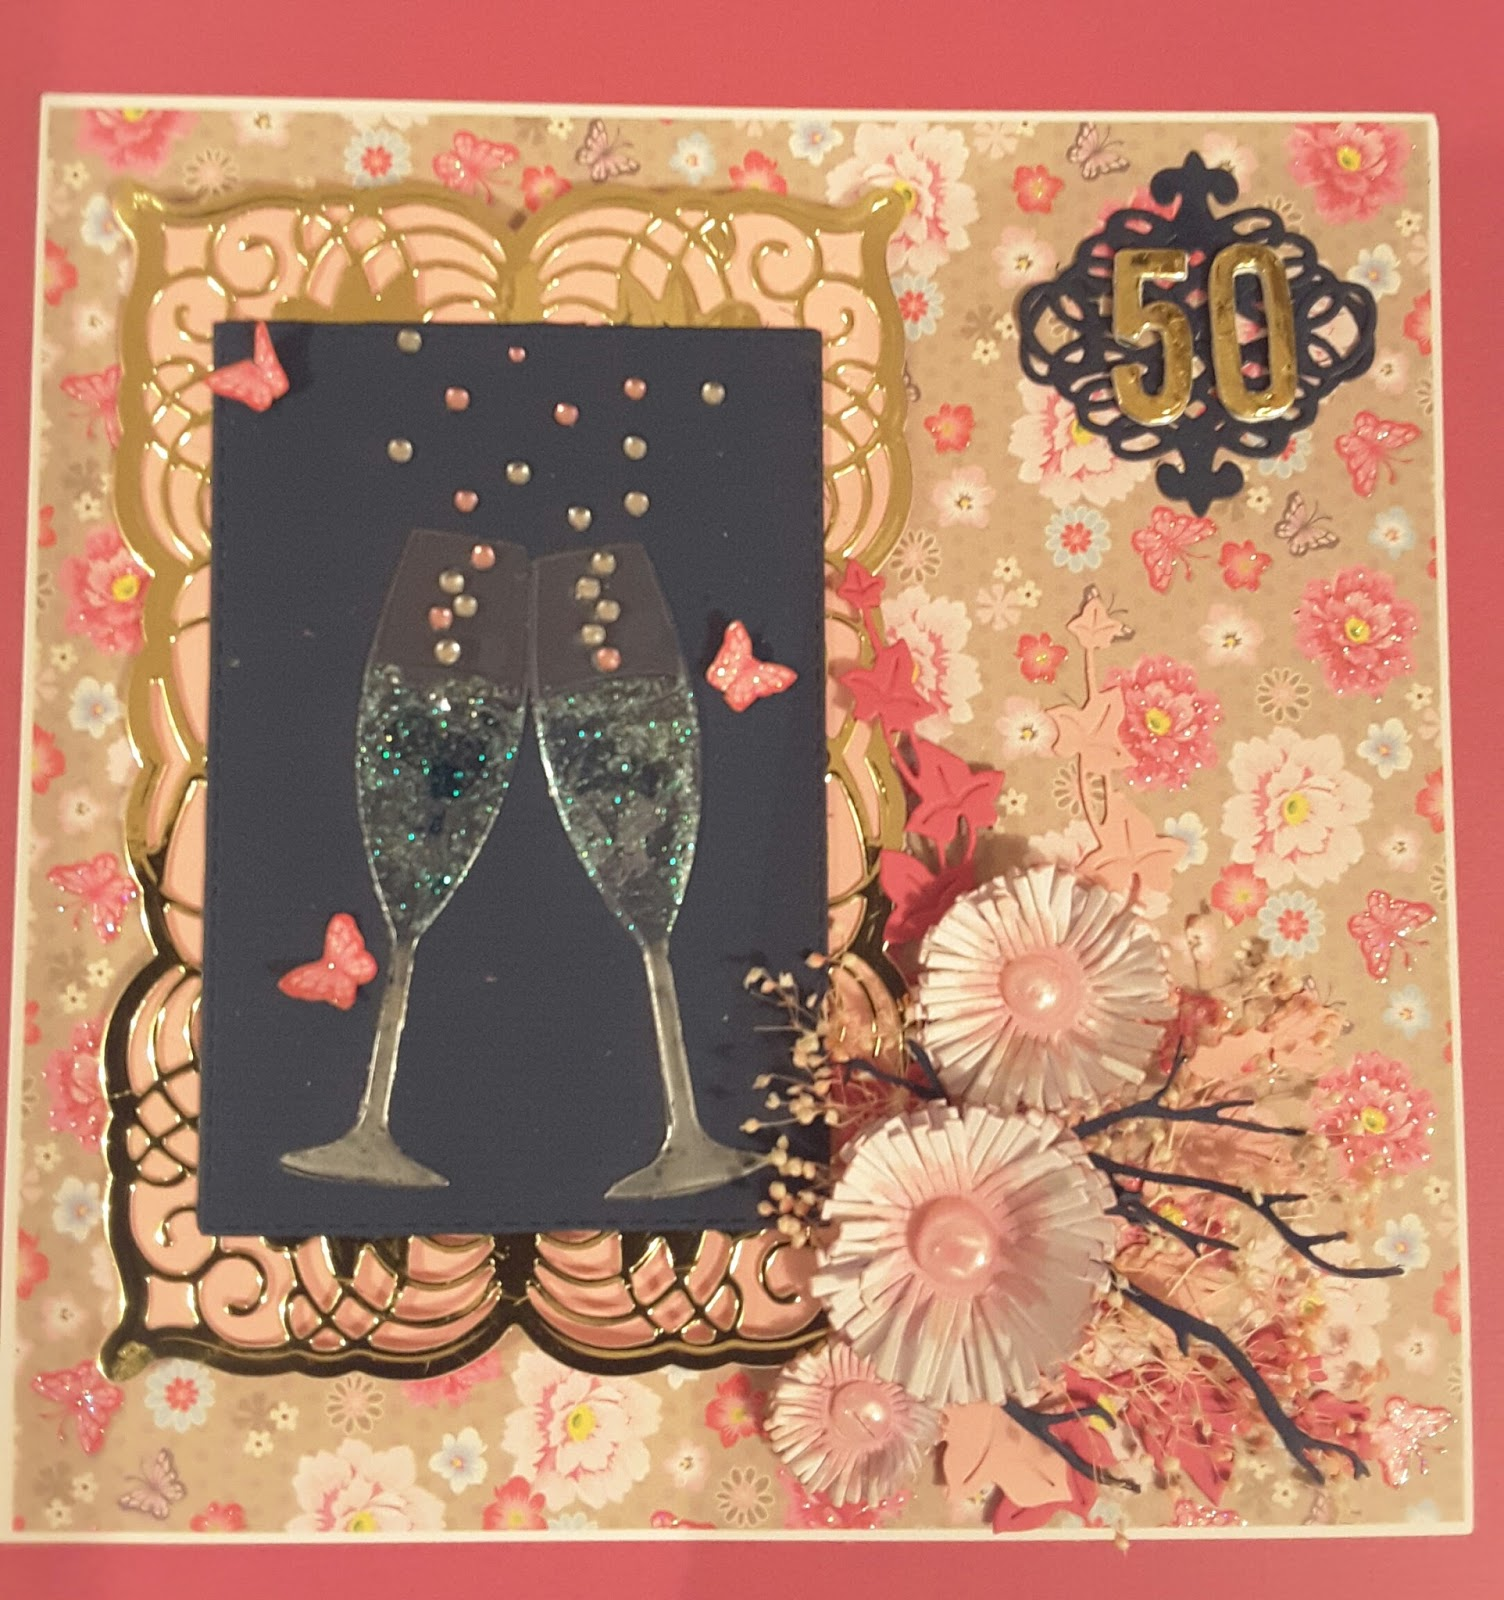 Focus on Papercraft: A 50th birthday card